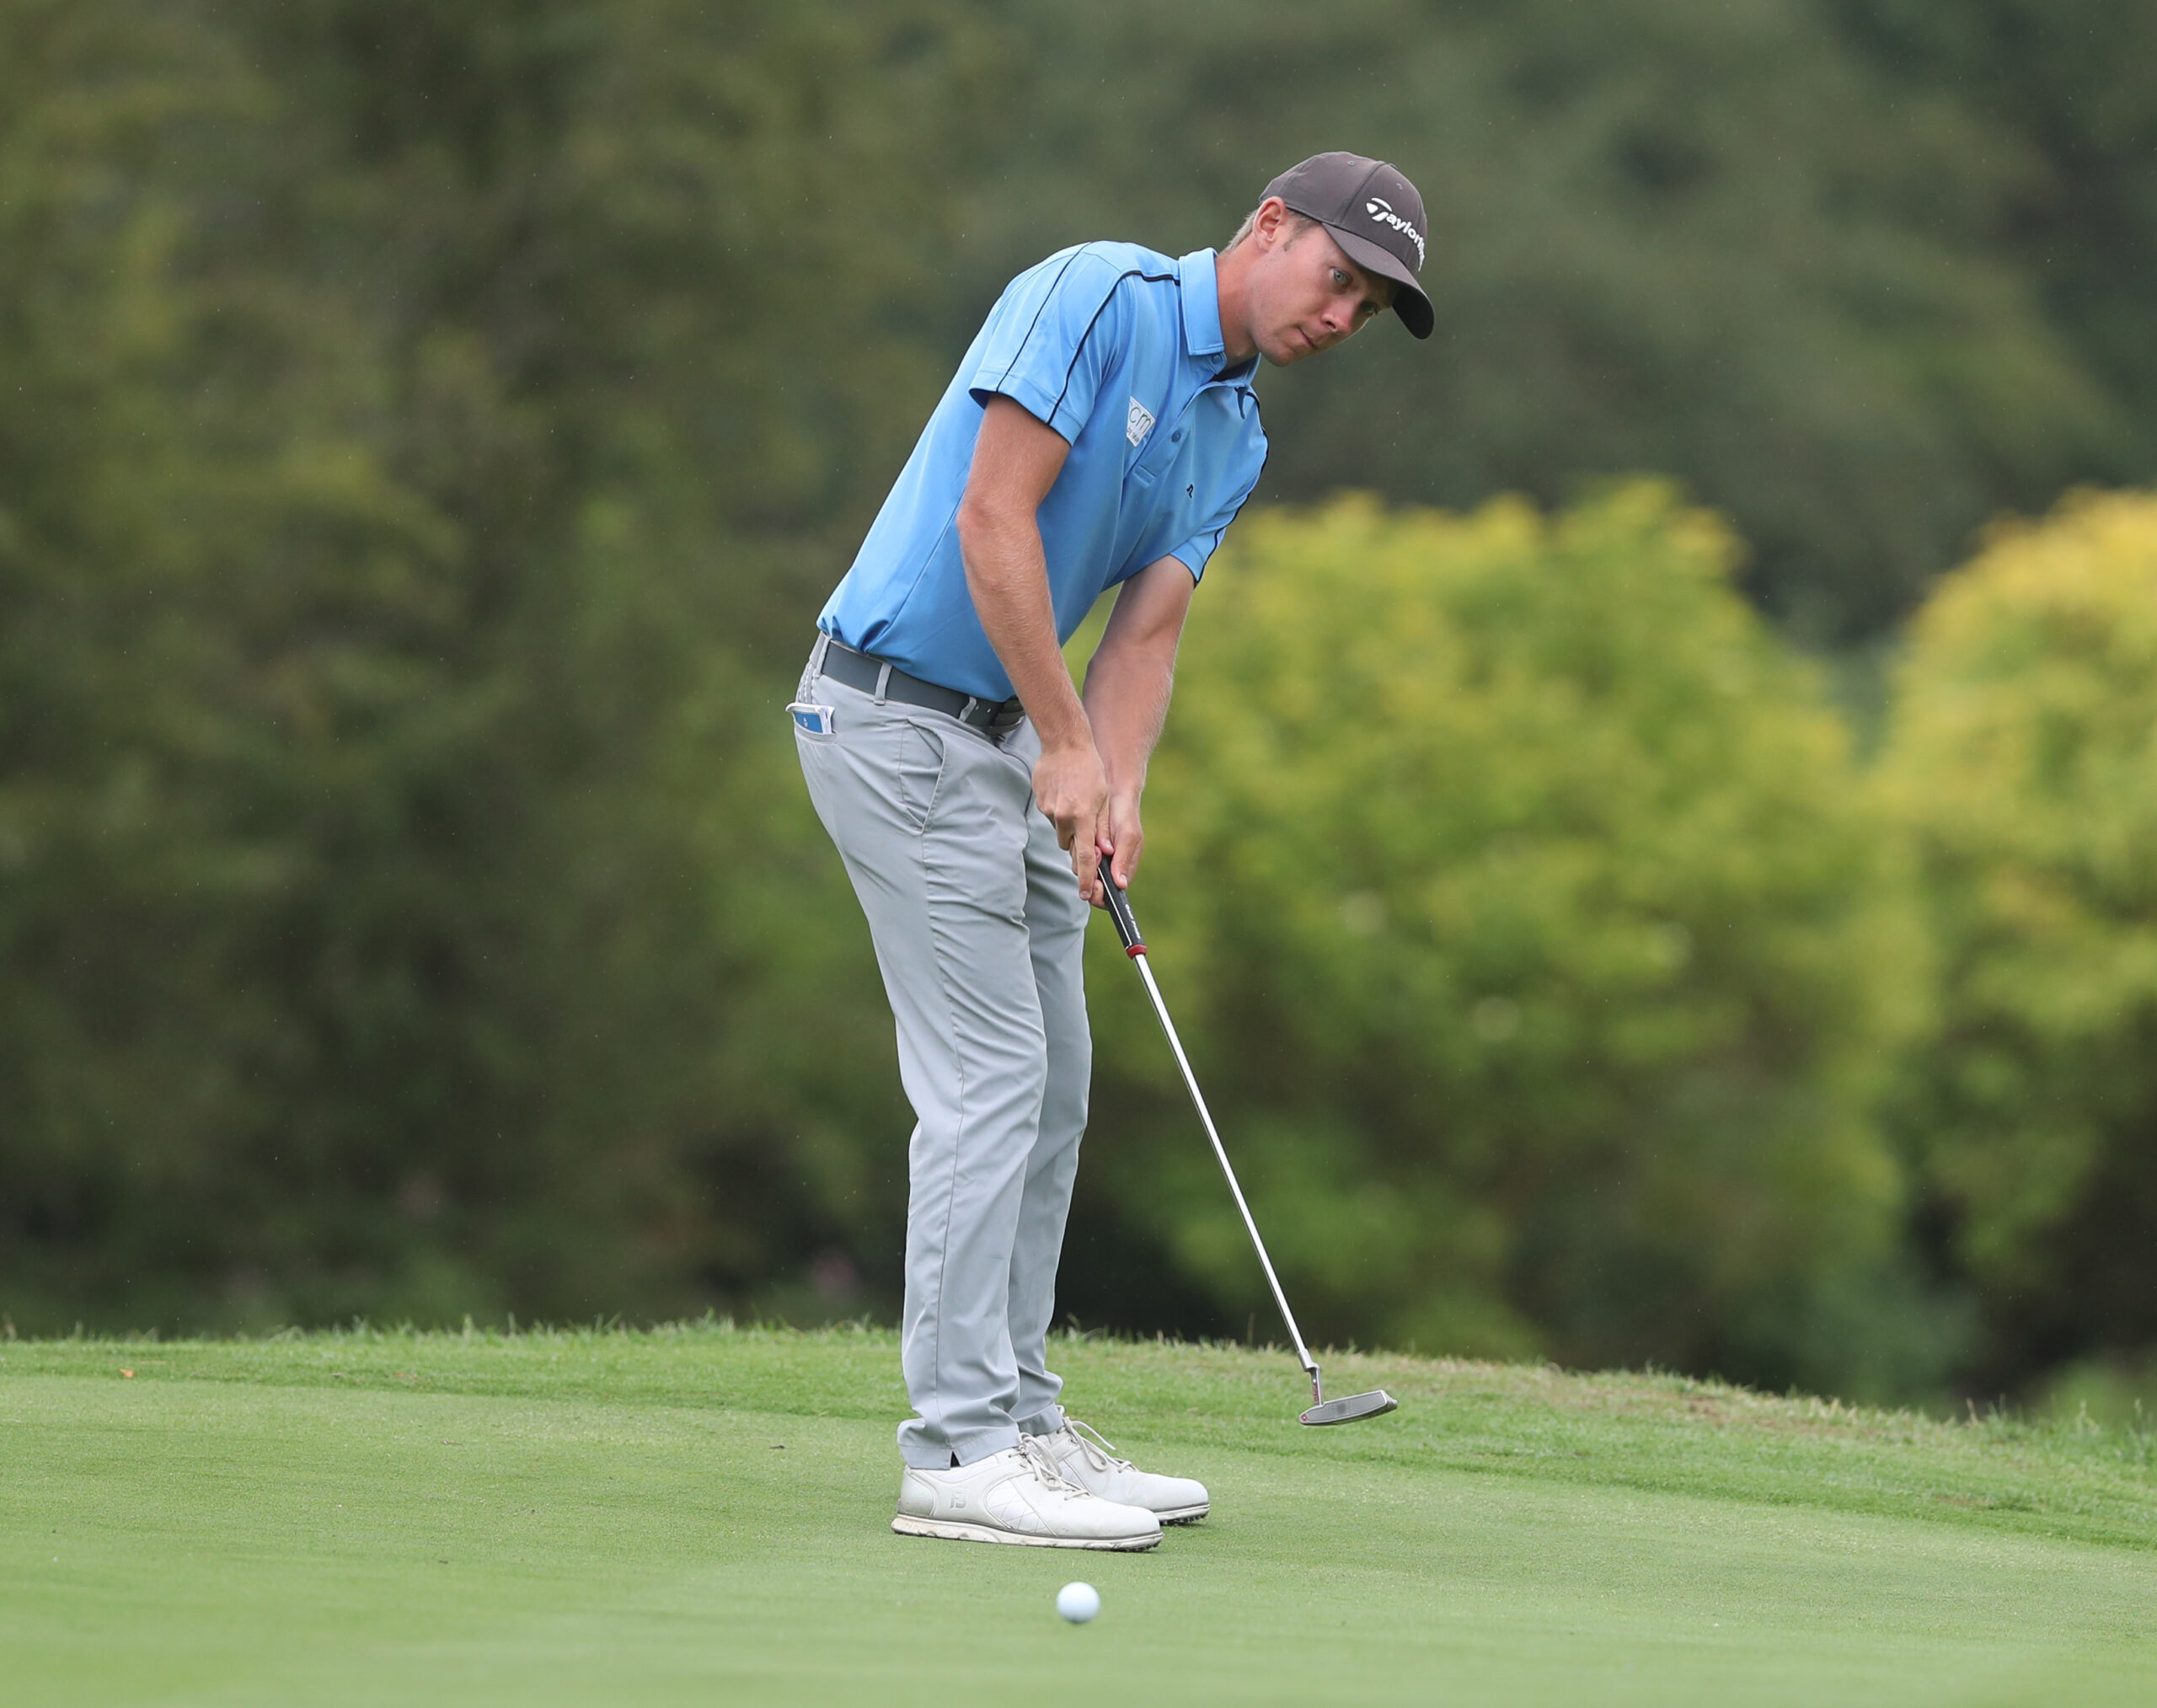 Josh Hilleard takes two shot lead at Studley Wood